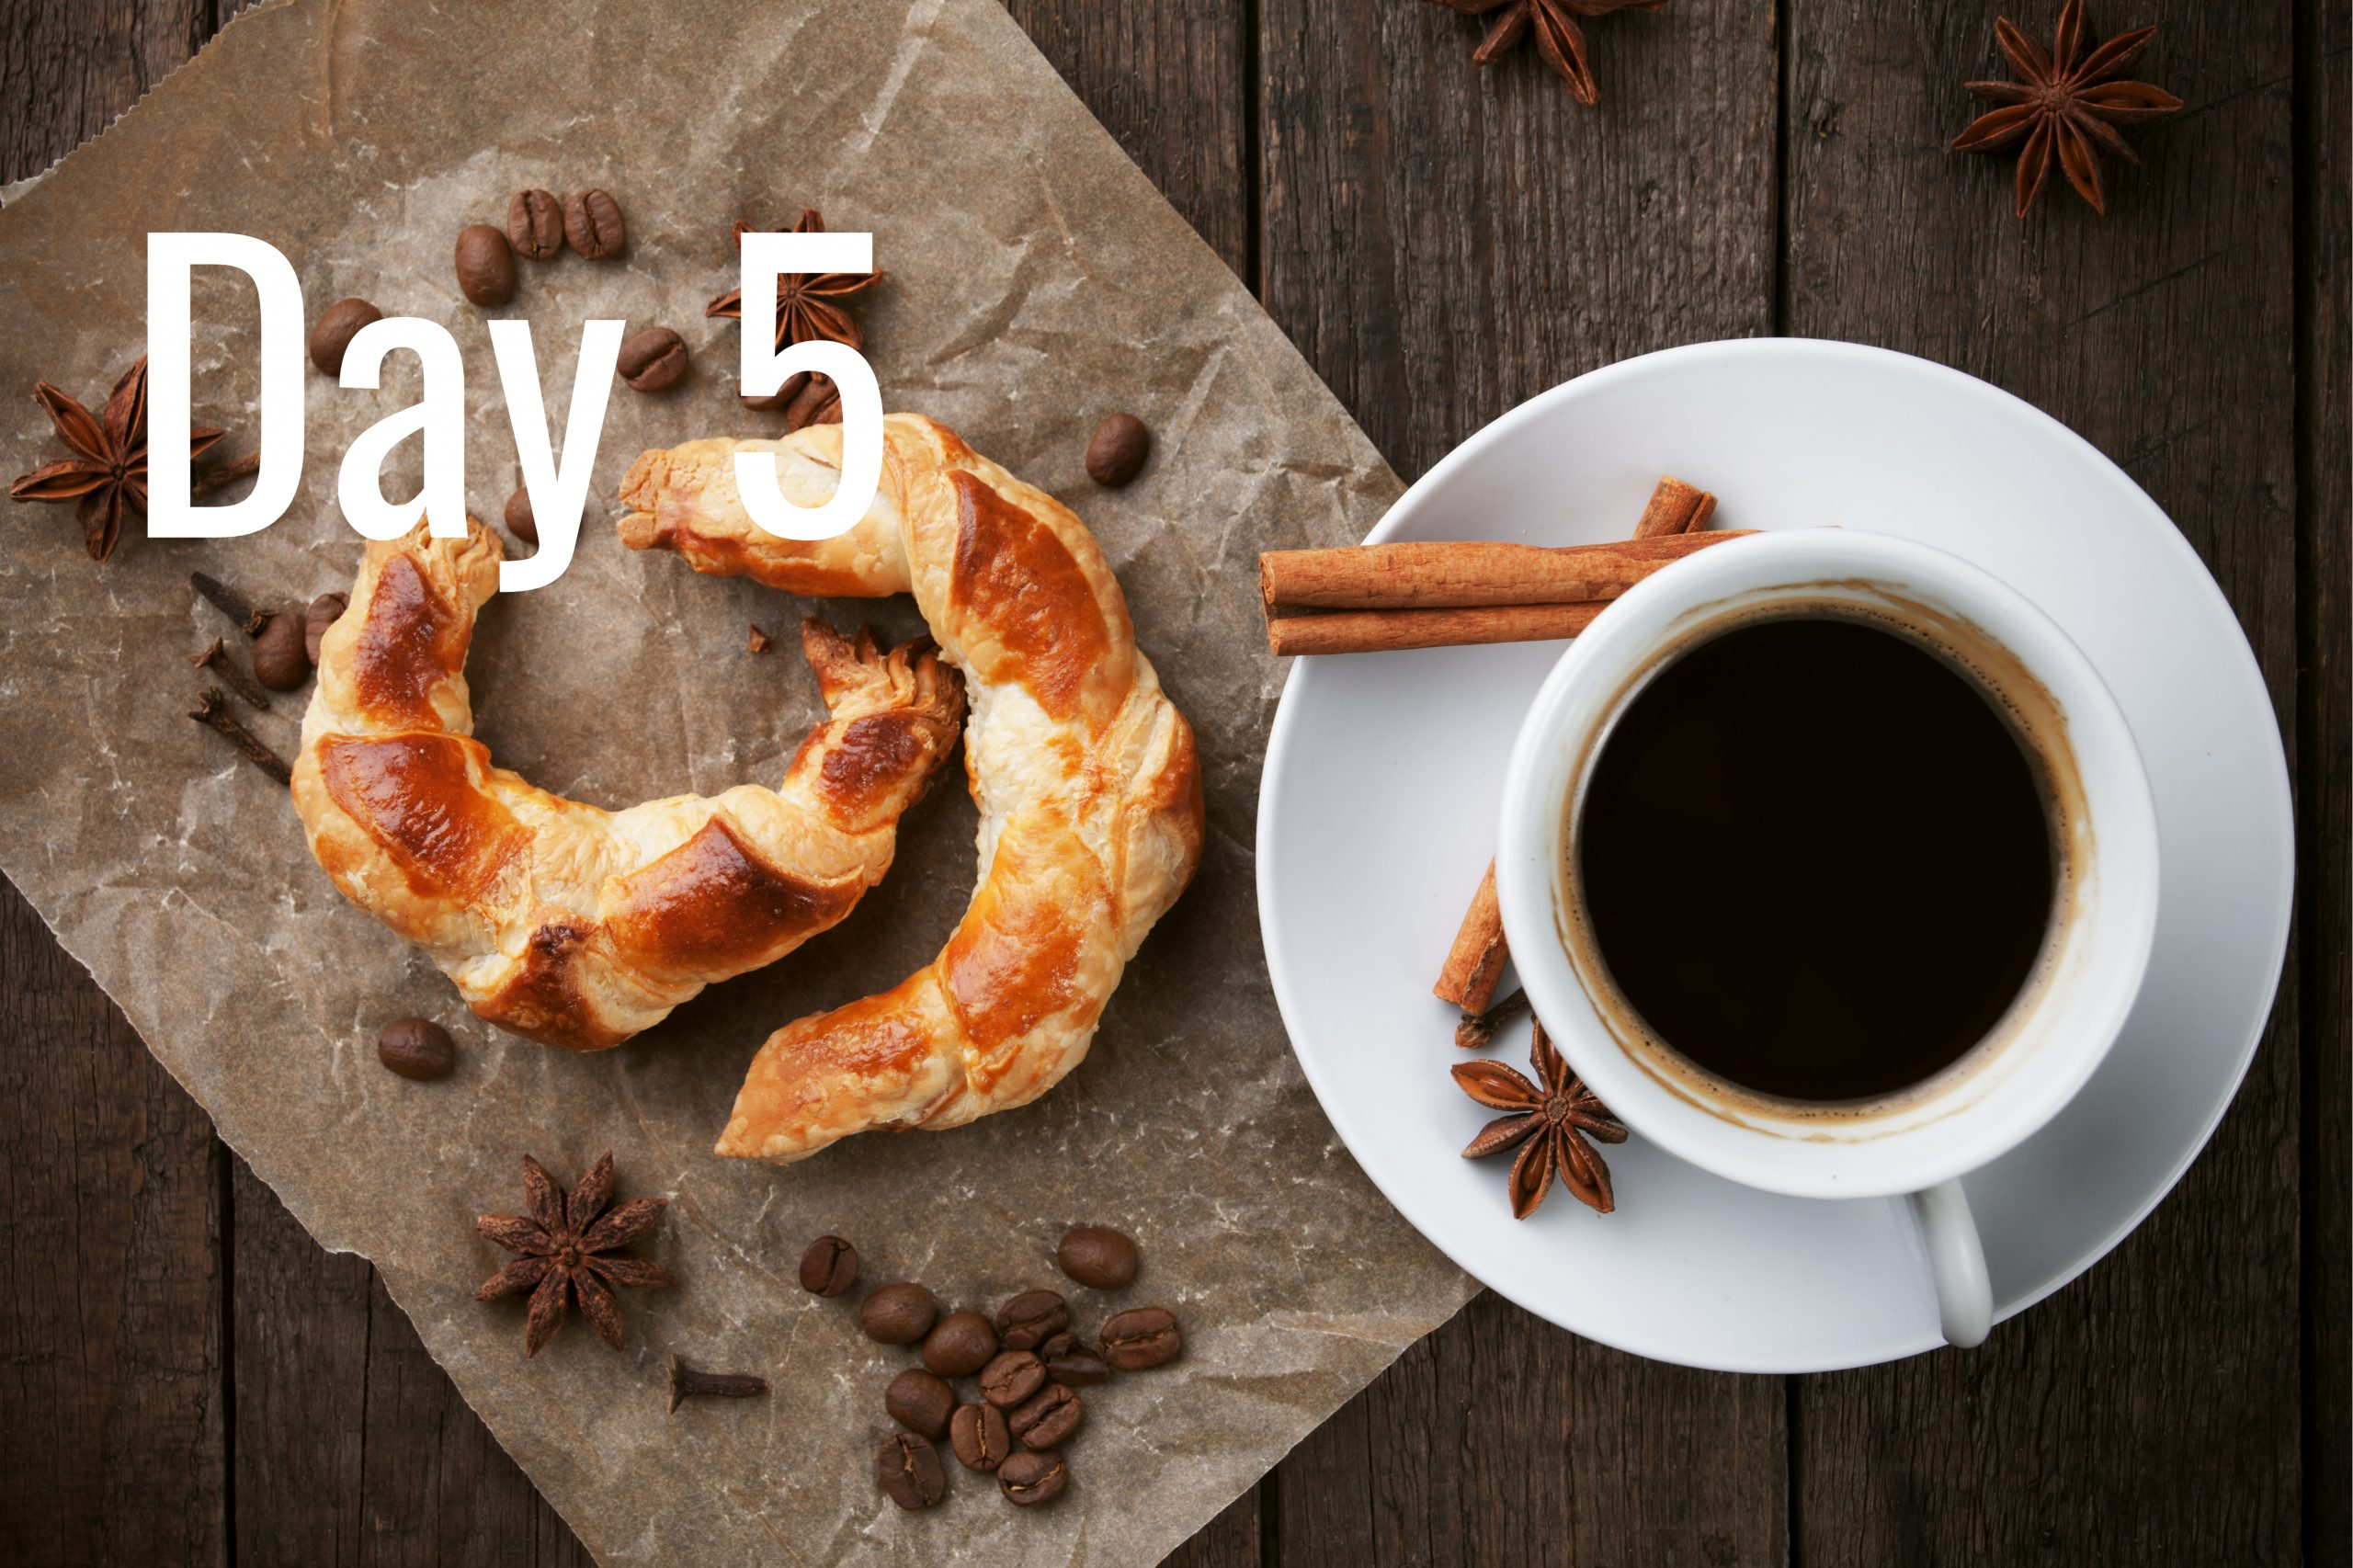 Day 5 – Carbohydrates, are you eating the right kind?